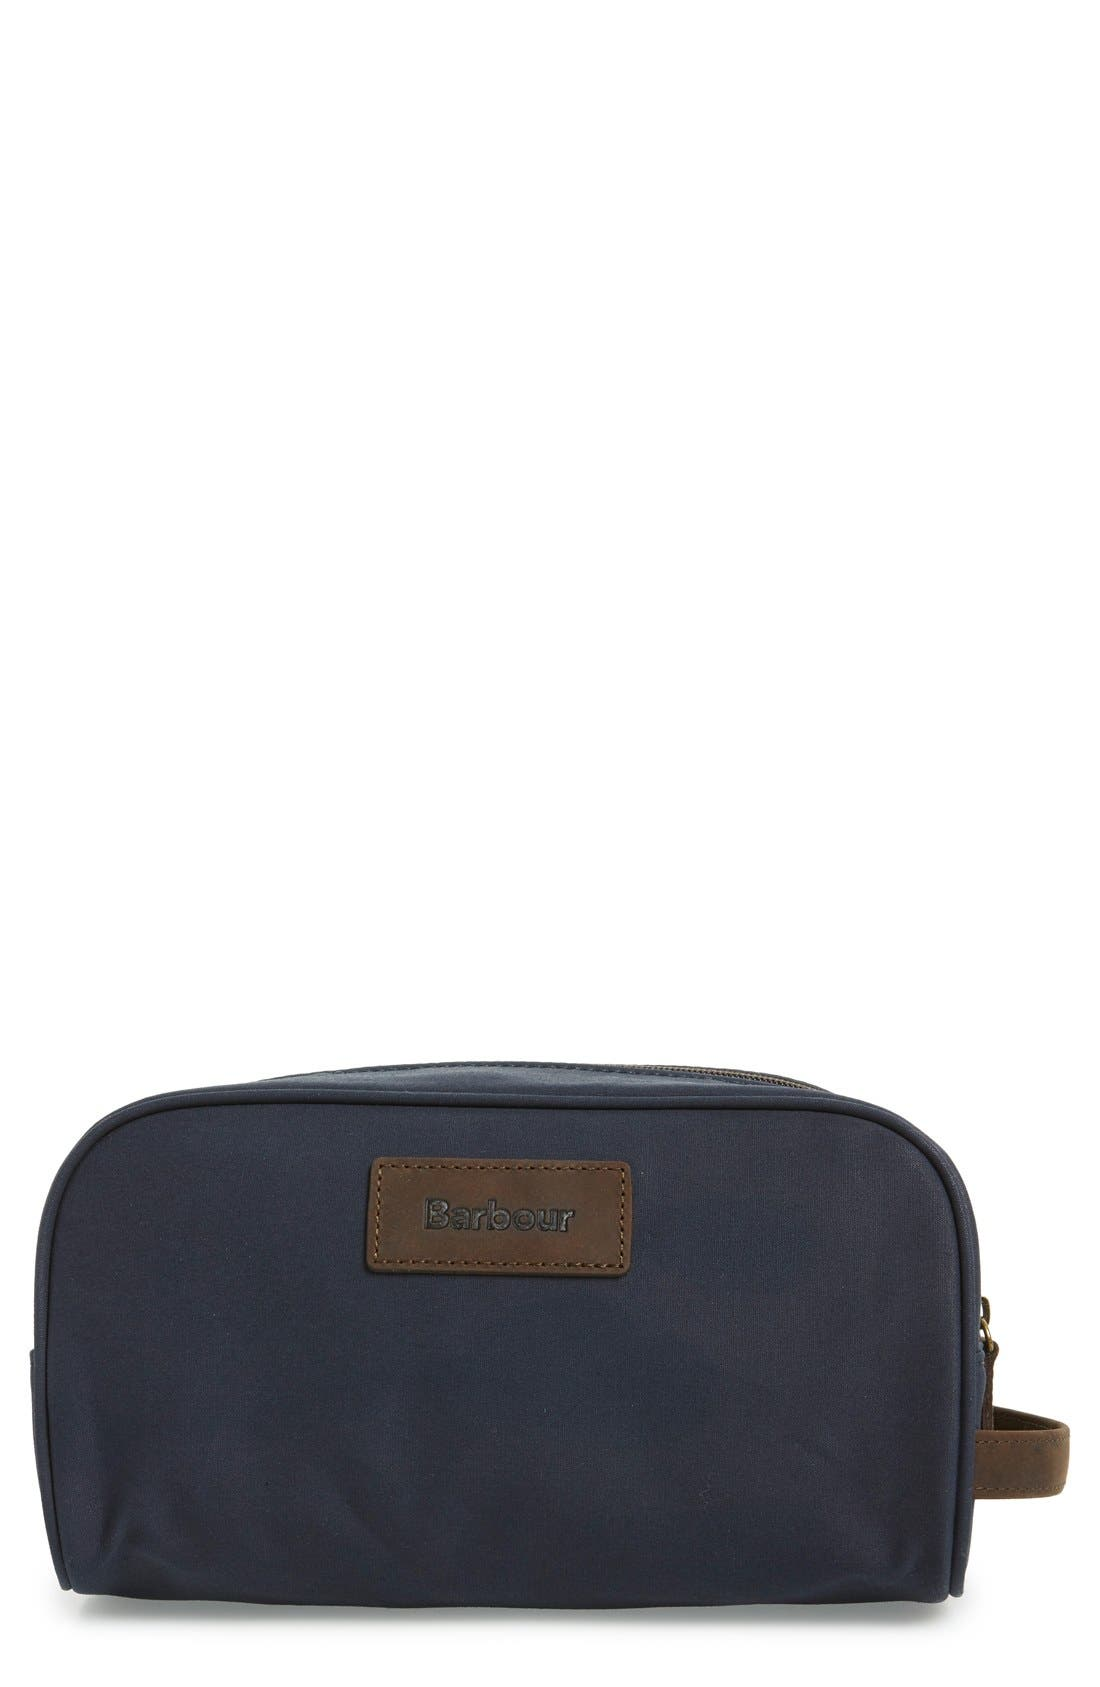 BARBOUR, Waxed Canvas Travel Kit, Main thumbnail 1, color, 410